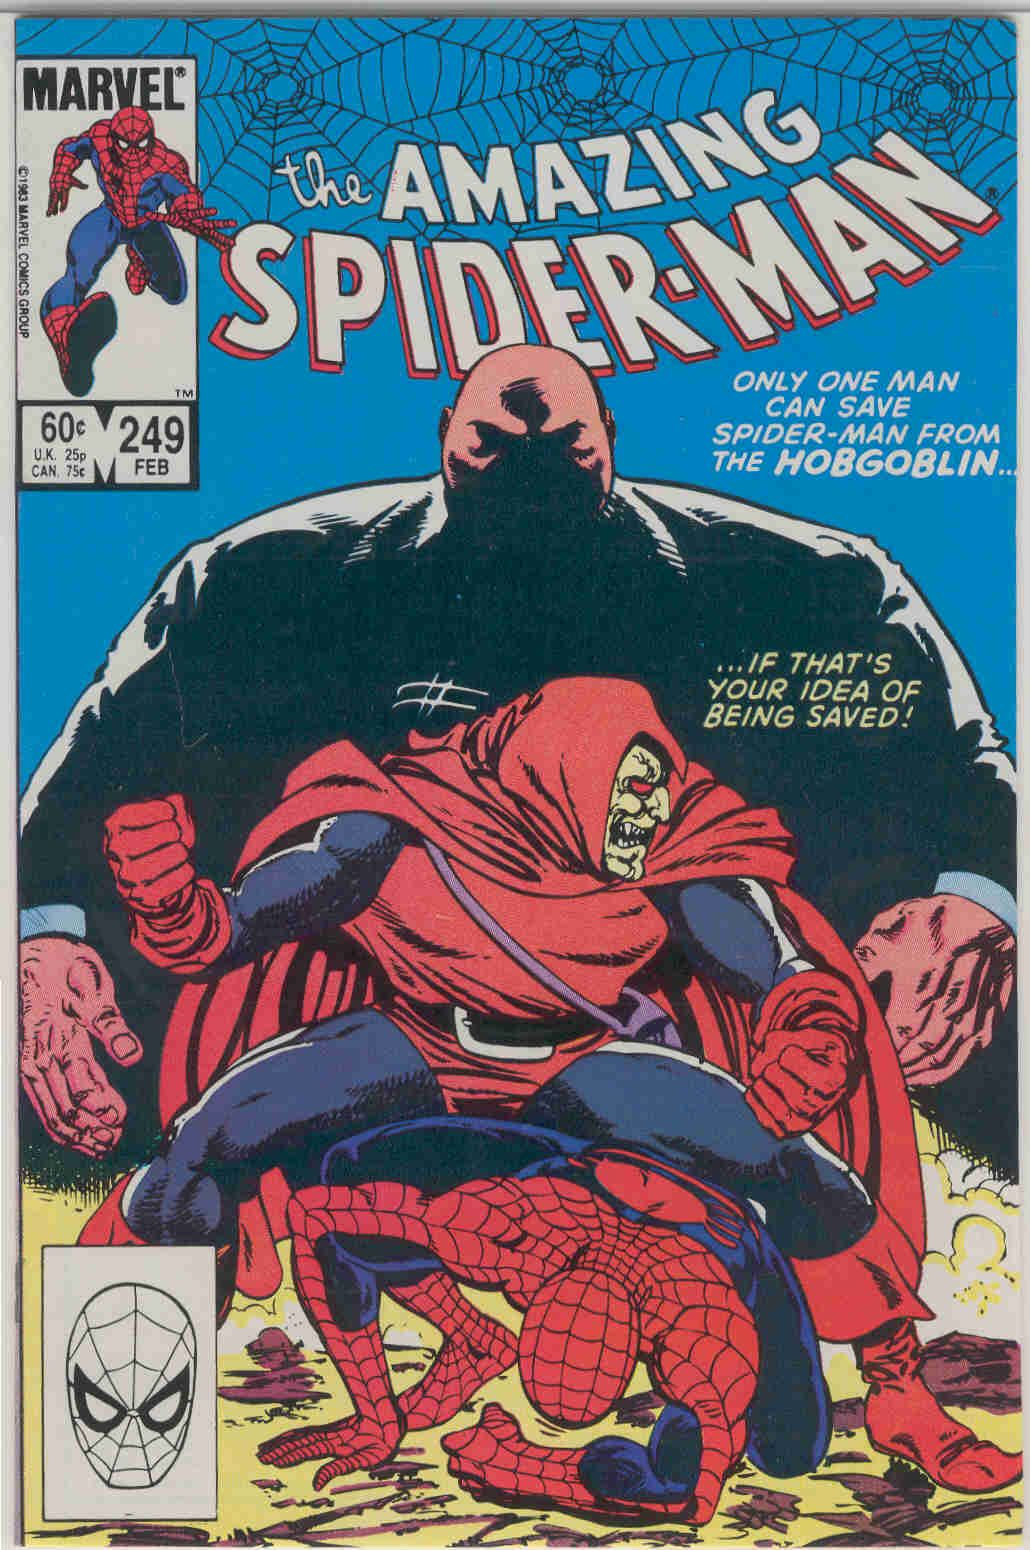 Title: Amazing Spider-Man   Year: 1963   Publisher: Marvel   Number: 249   Print: 1   Type: Regular   TitleId: bba0d660-be80-4eaa-888f-48e95a3afb72